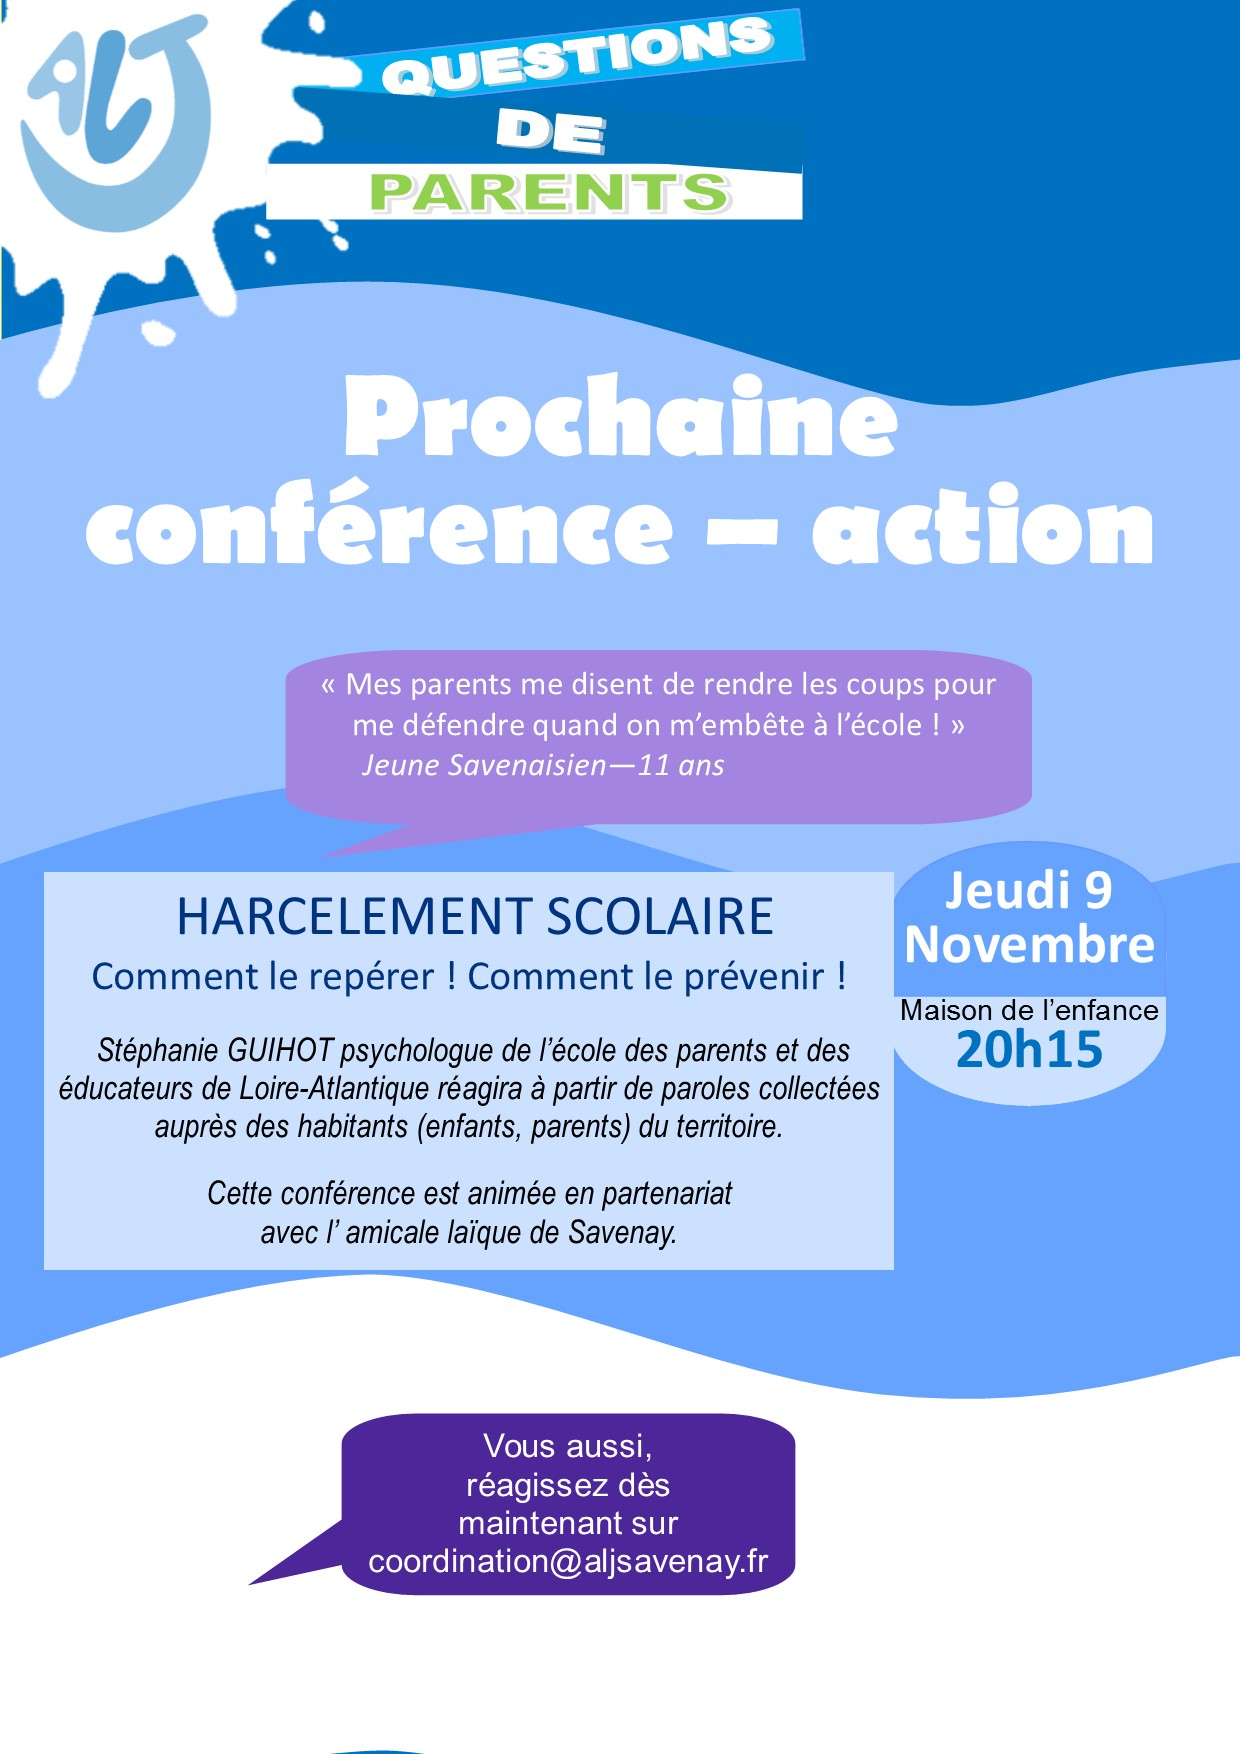 Fly conf action harcelement scolaire recto 2